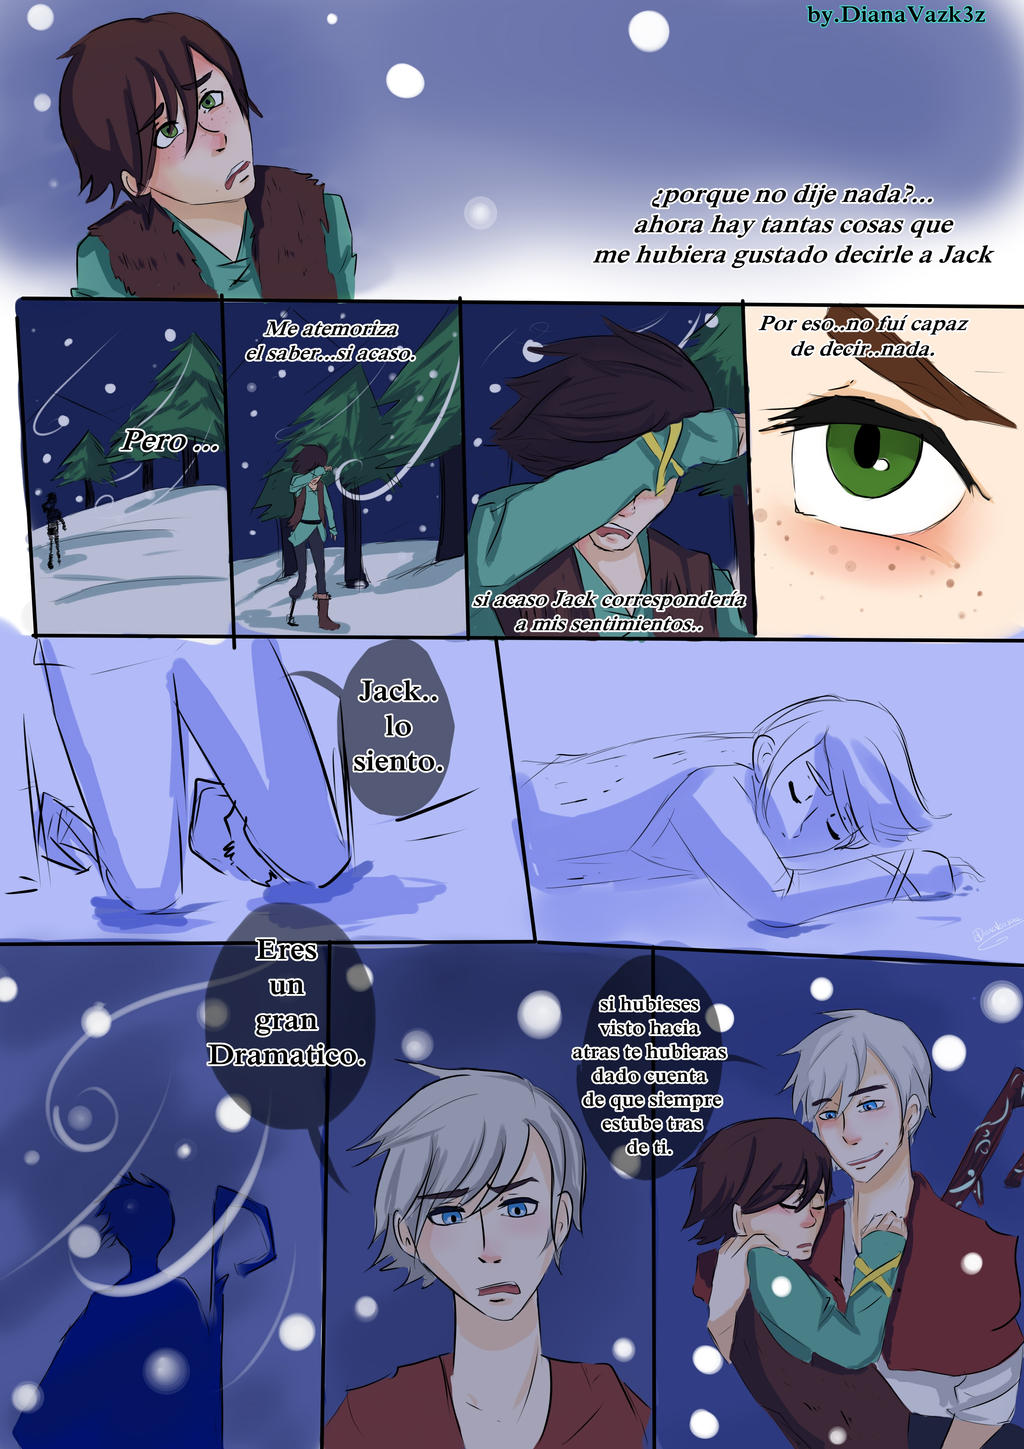 Hiccup x jack frost yaoi fanfiction jack x hiccup 007 by how to